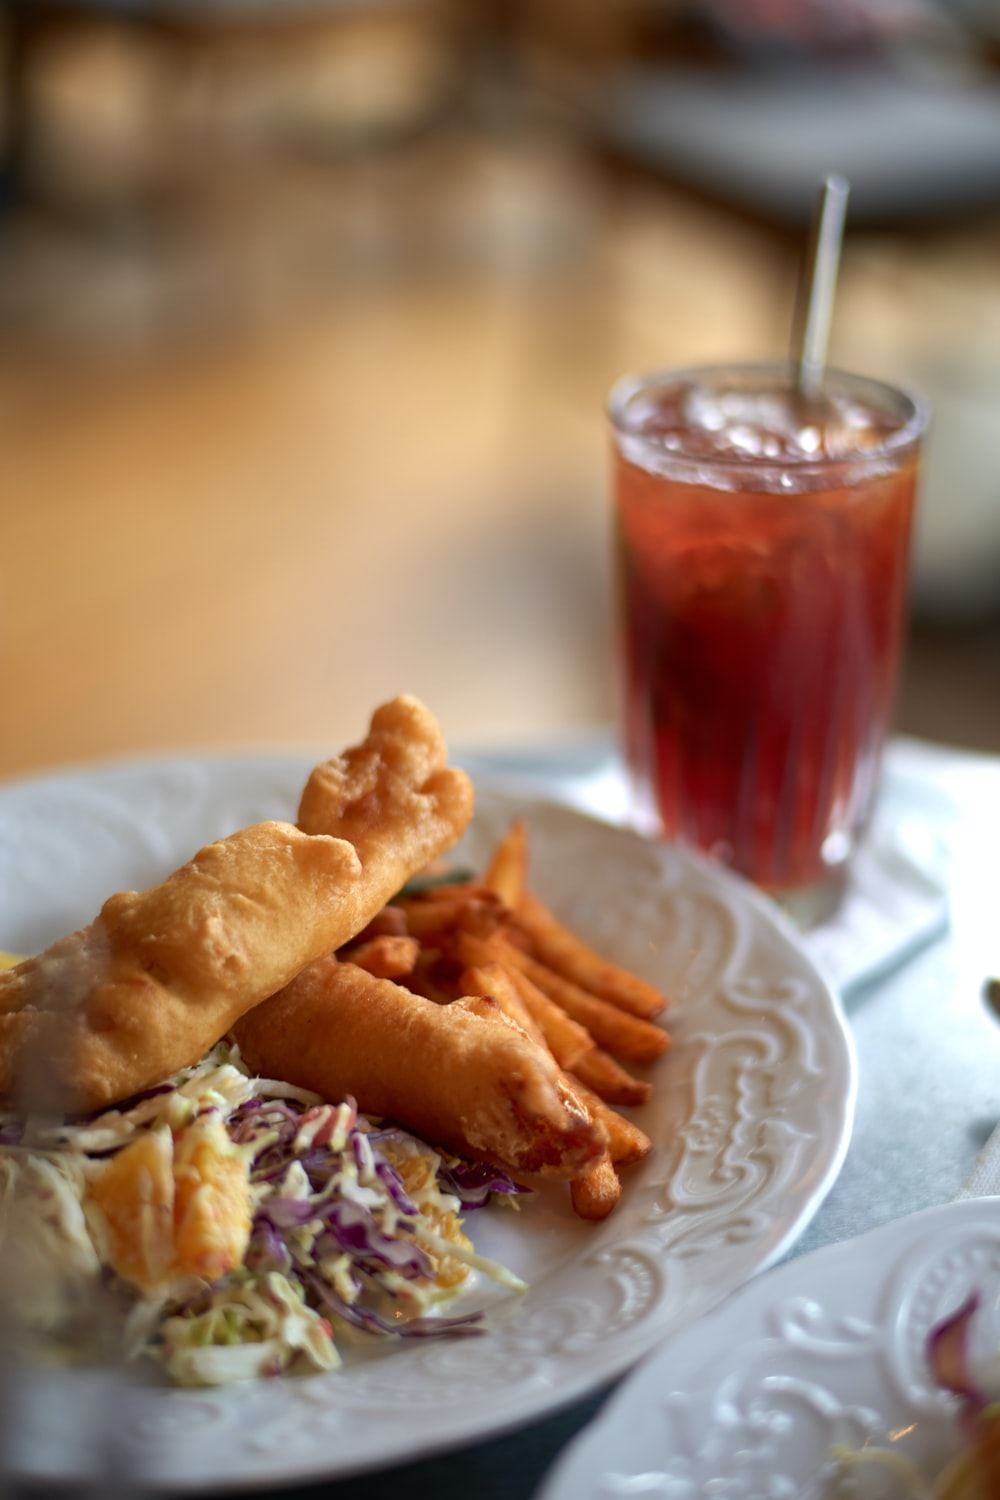 food on round white ceramic plate beside glass of drink